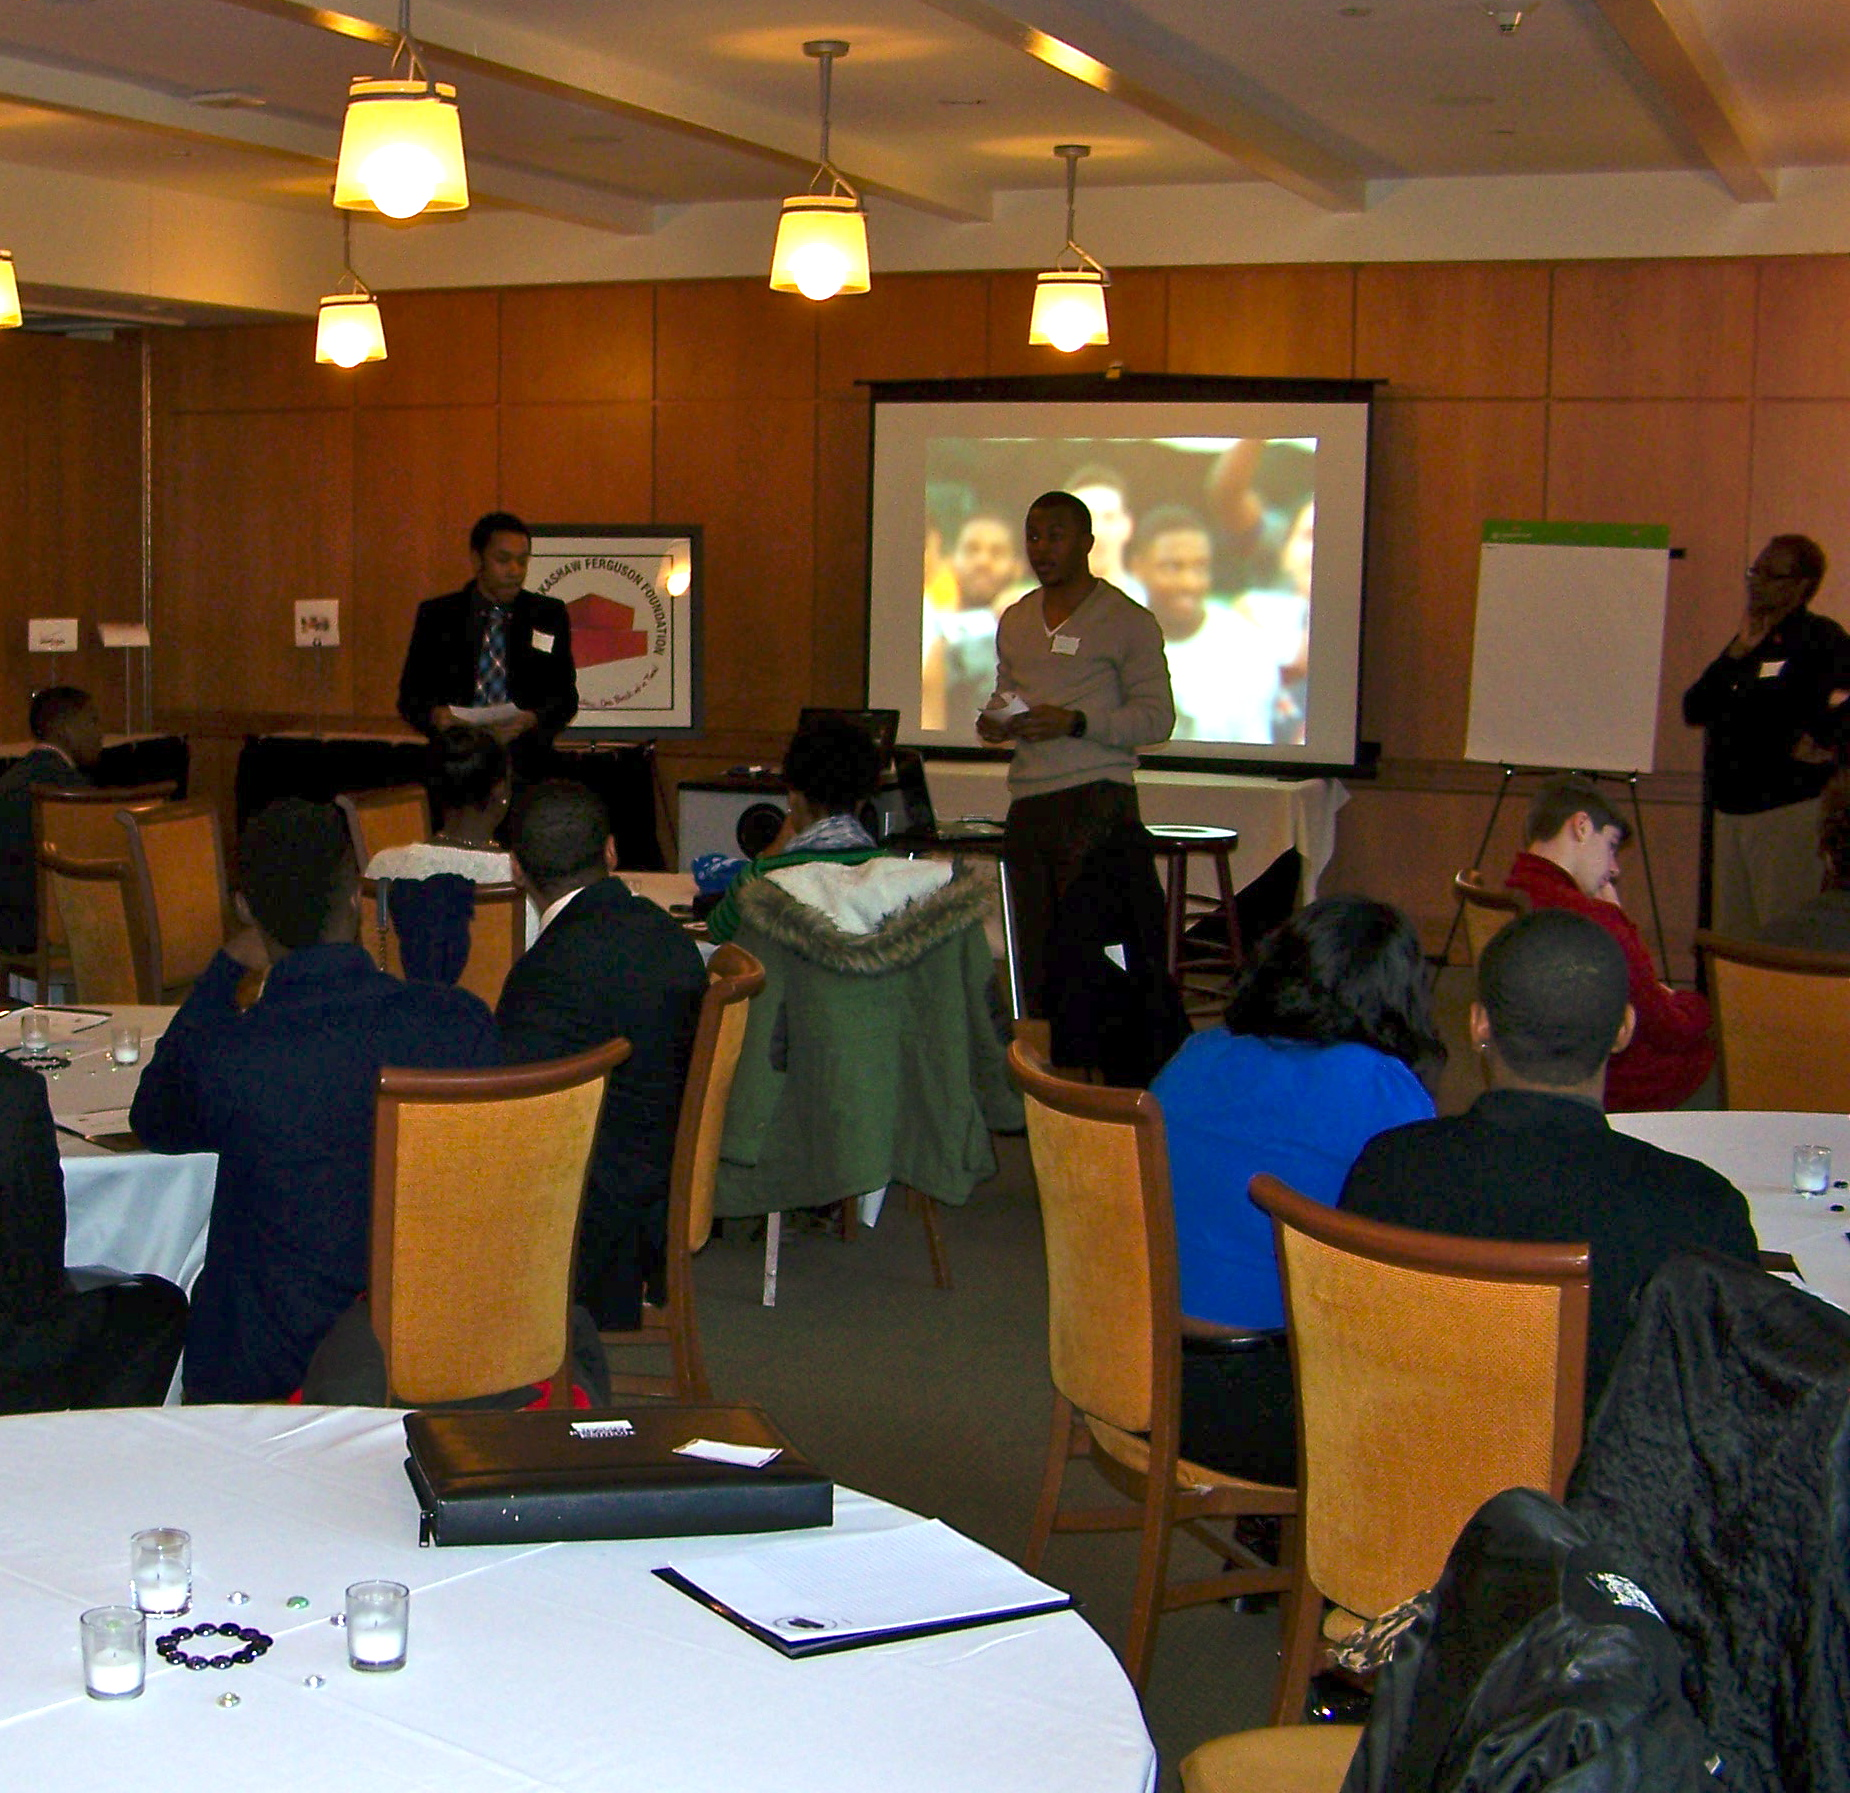 YOUTH-CONFERENCE-1-7-2014 073.JPG